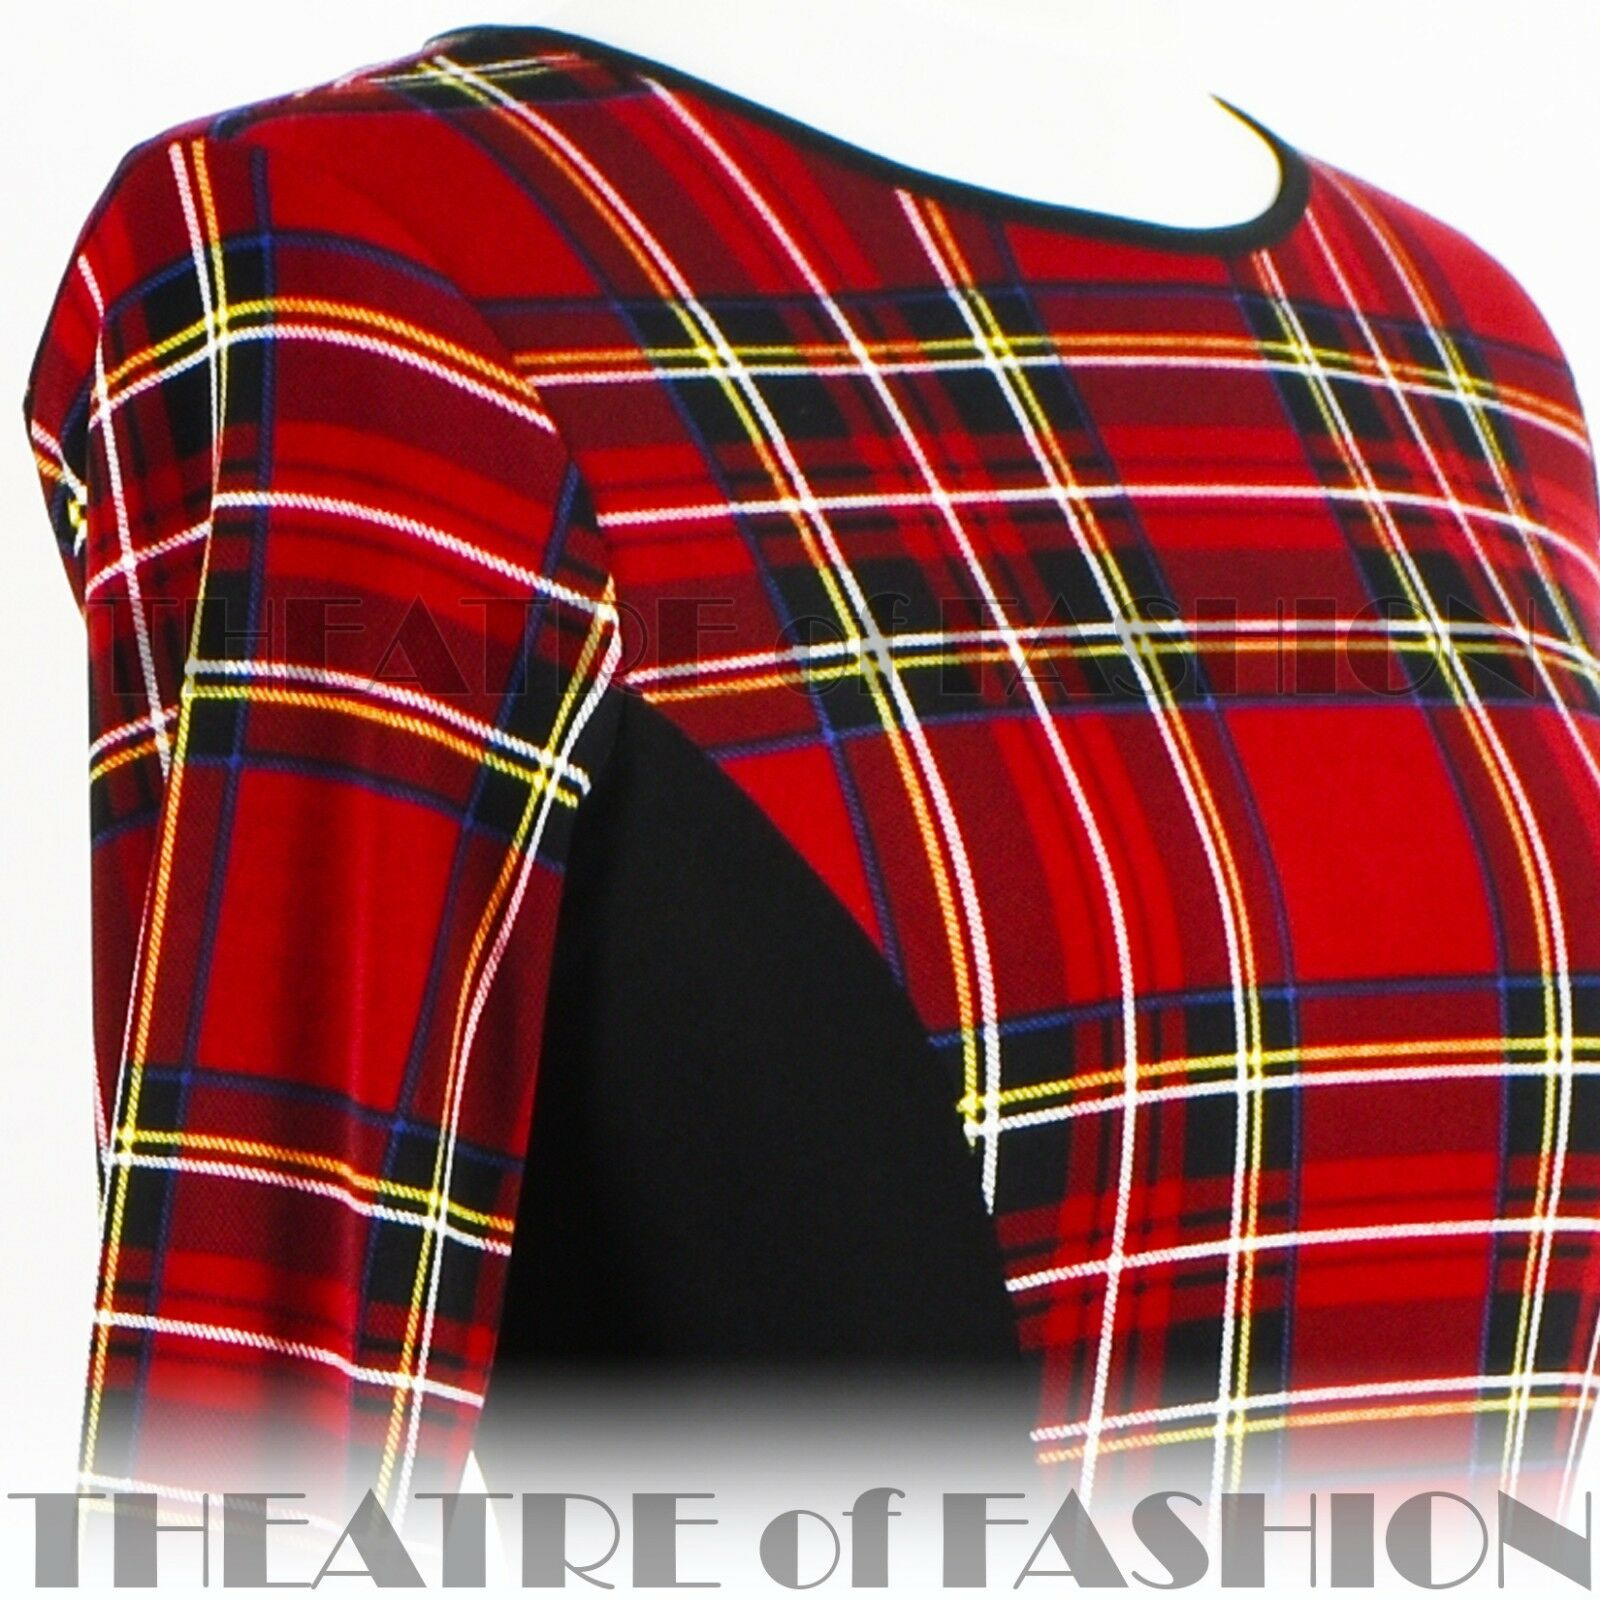 DRESS TARTAN 50s 50s 50s VAMP MOVIE STAR VINTAGE 12 14 16 DIVA 60s POP ART PUNK BODYCON 695013